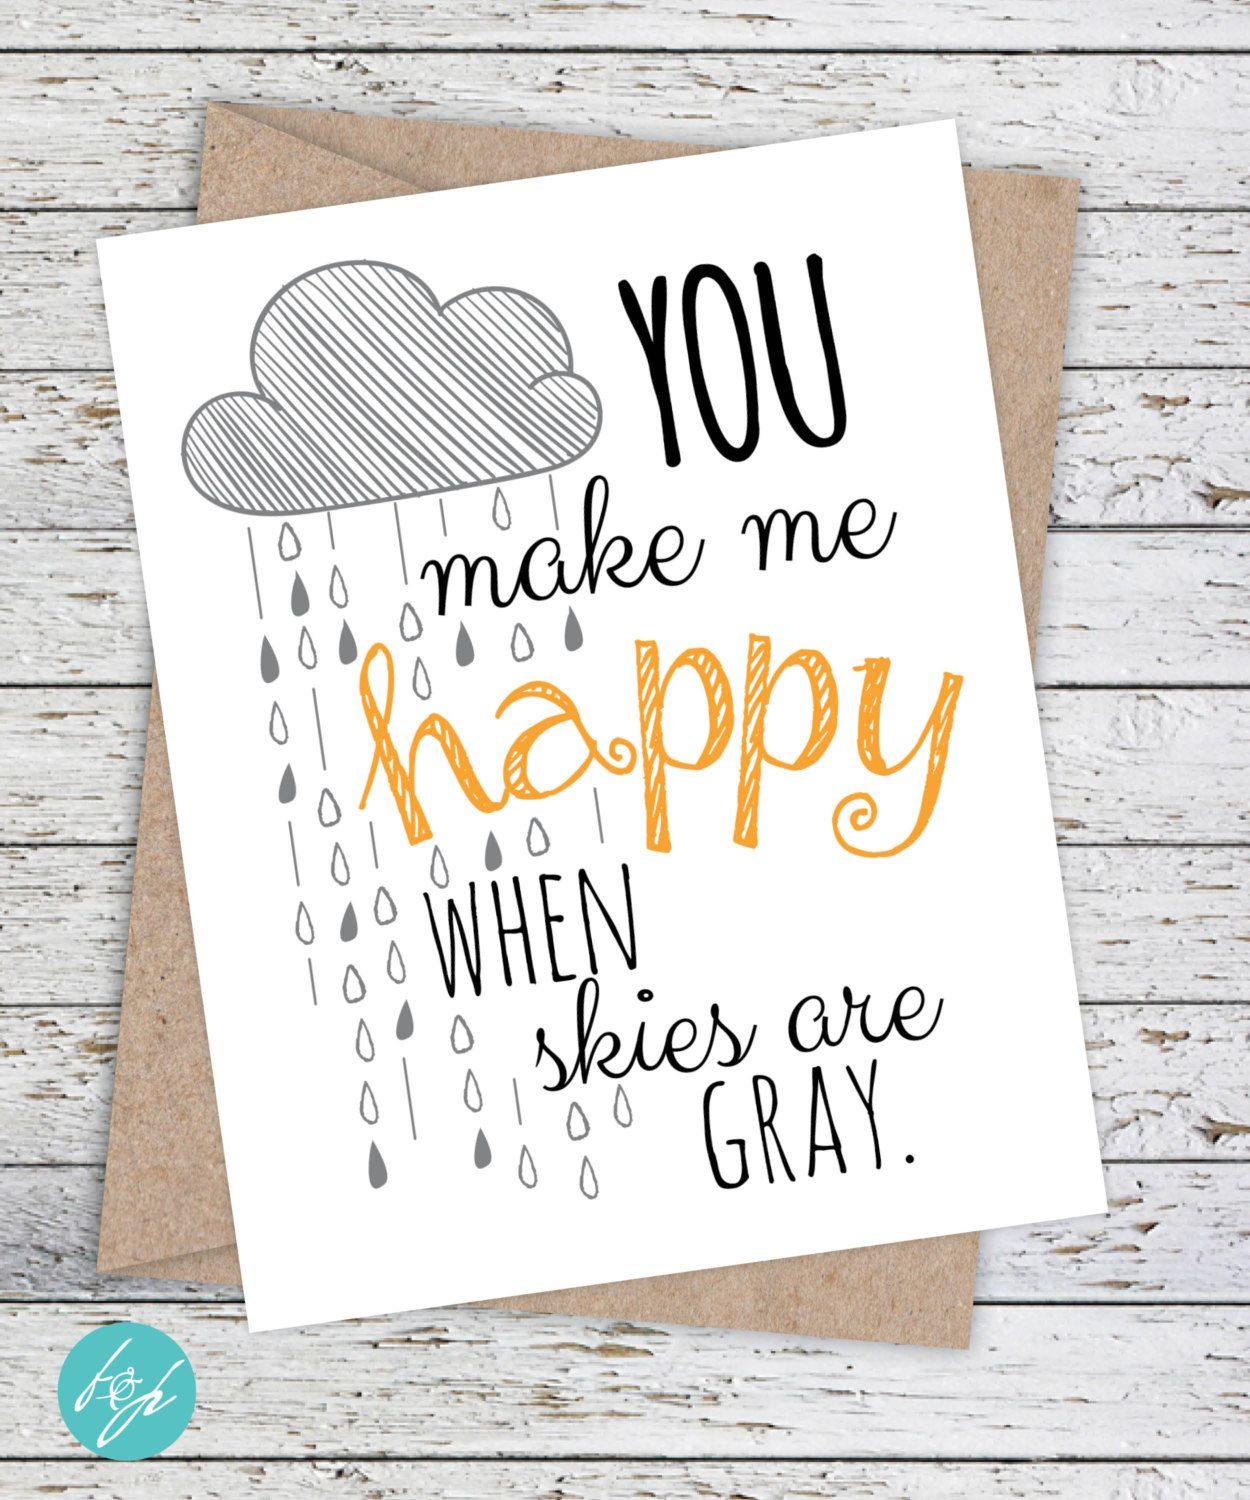 How to make scrapbook for girlfriend - Boyfriend Card Girlfriend Card Just Because Thinking Of You Card You Make Me Happy When Skies Are Gray